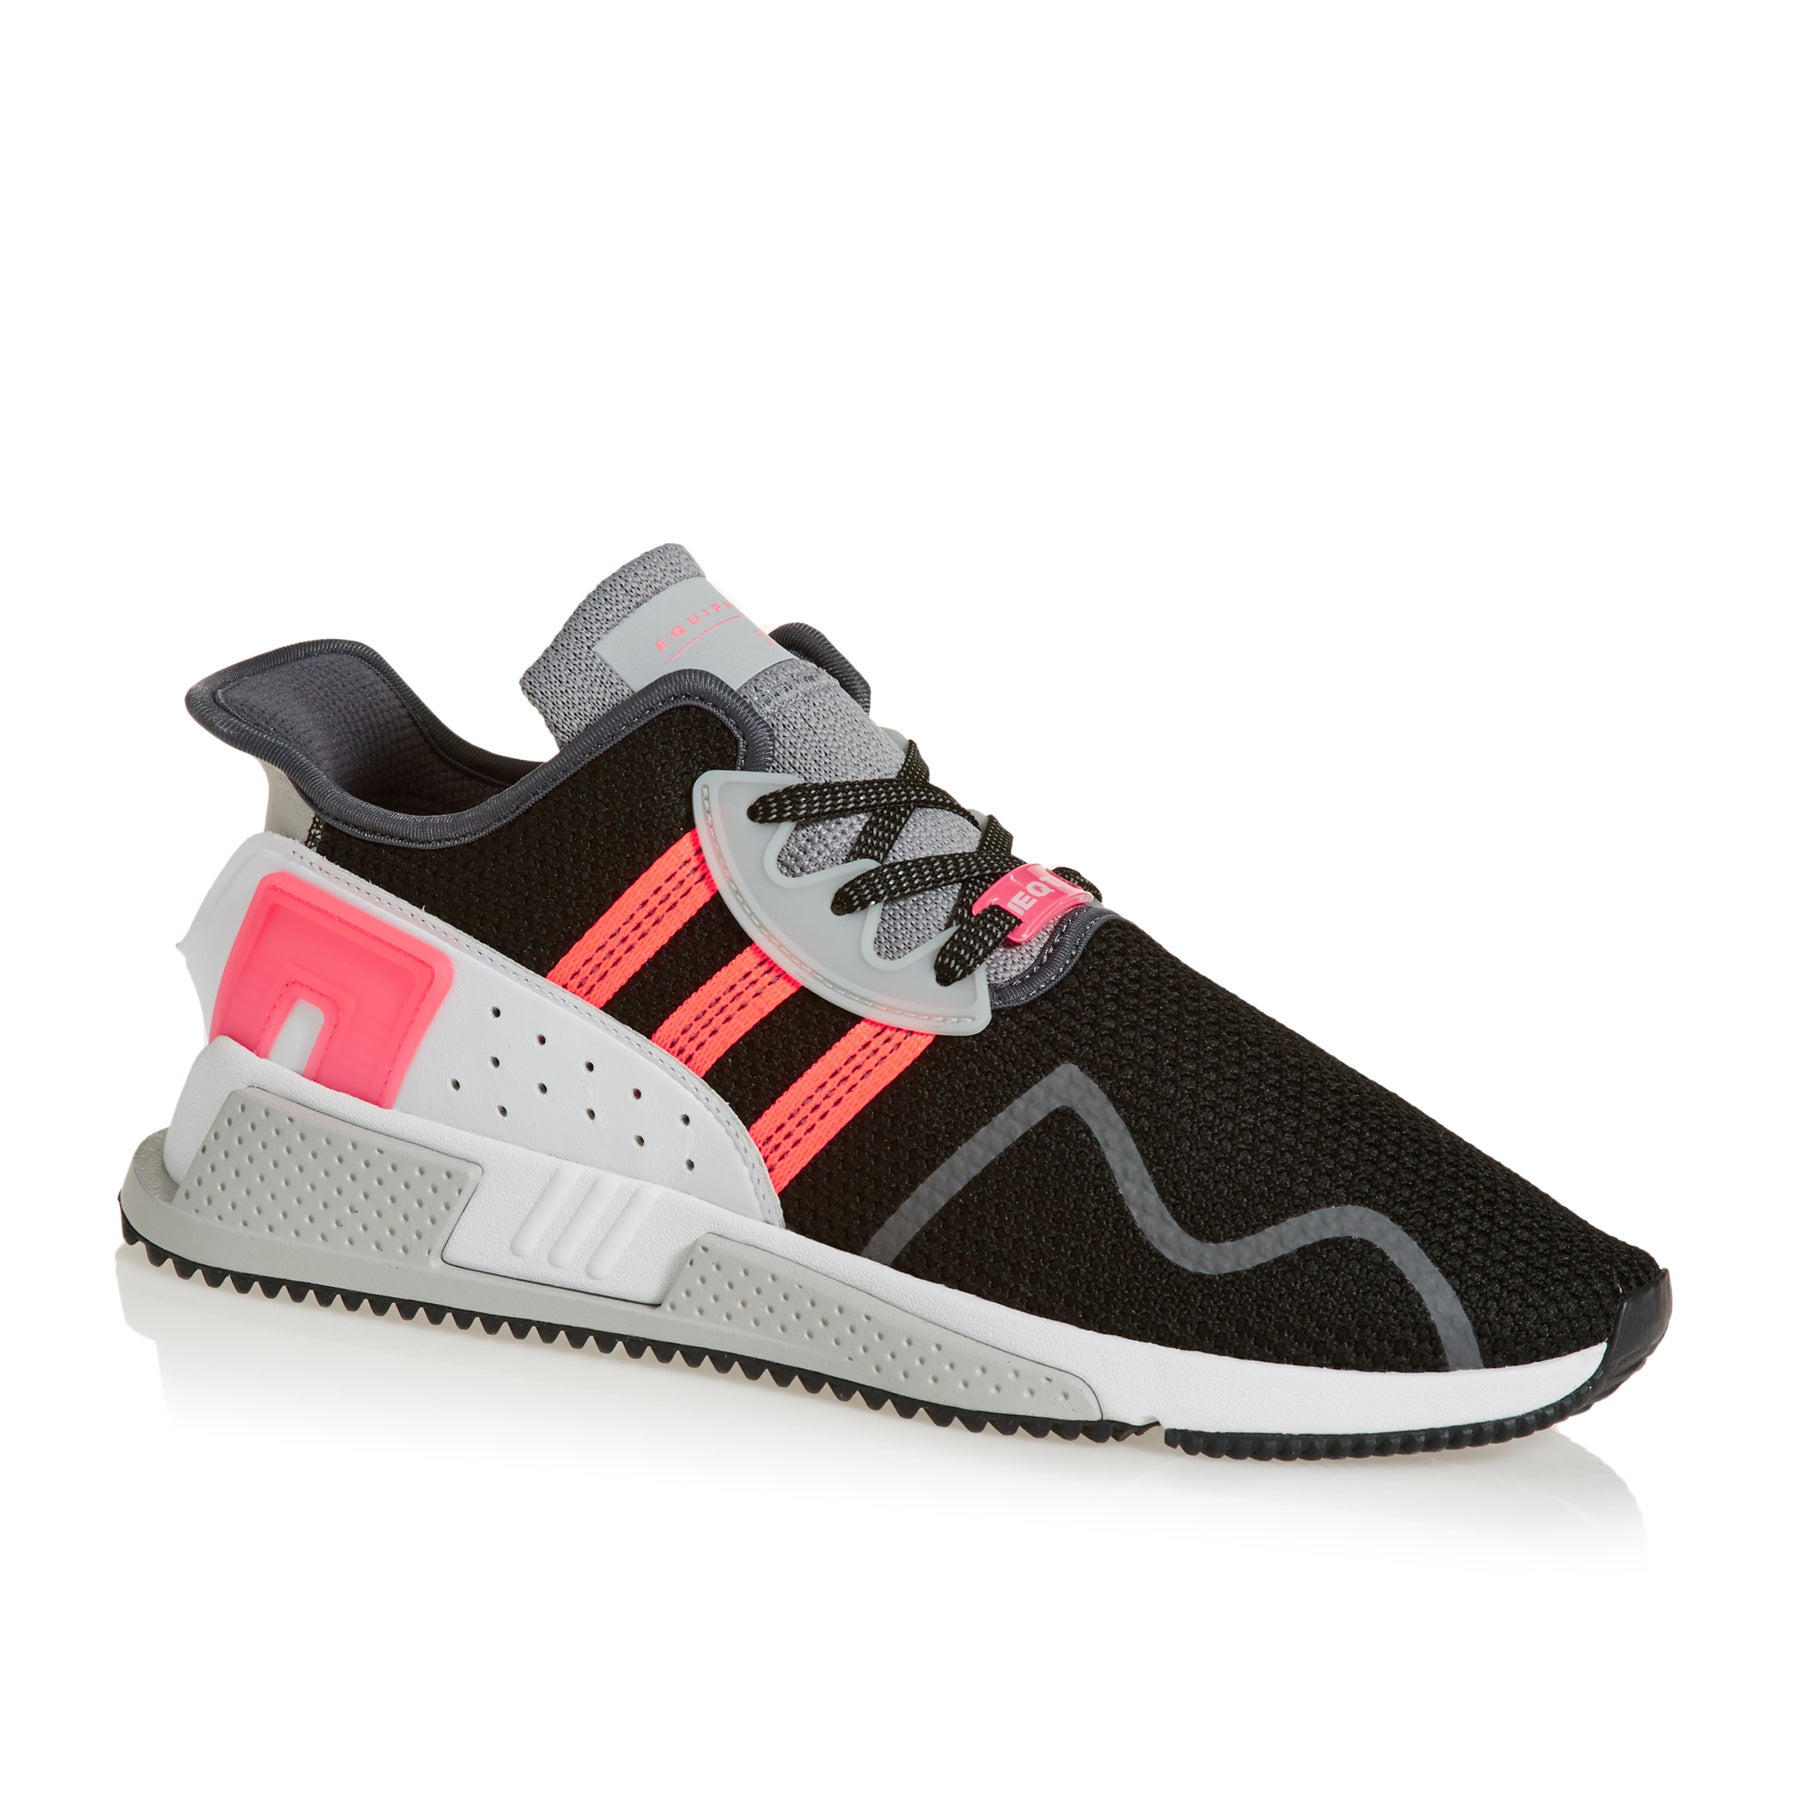 Adidas Originals EQT Cushion Adv Shoes - Black White Pink